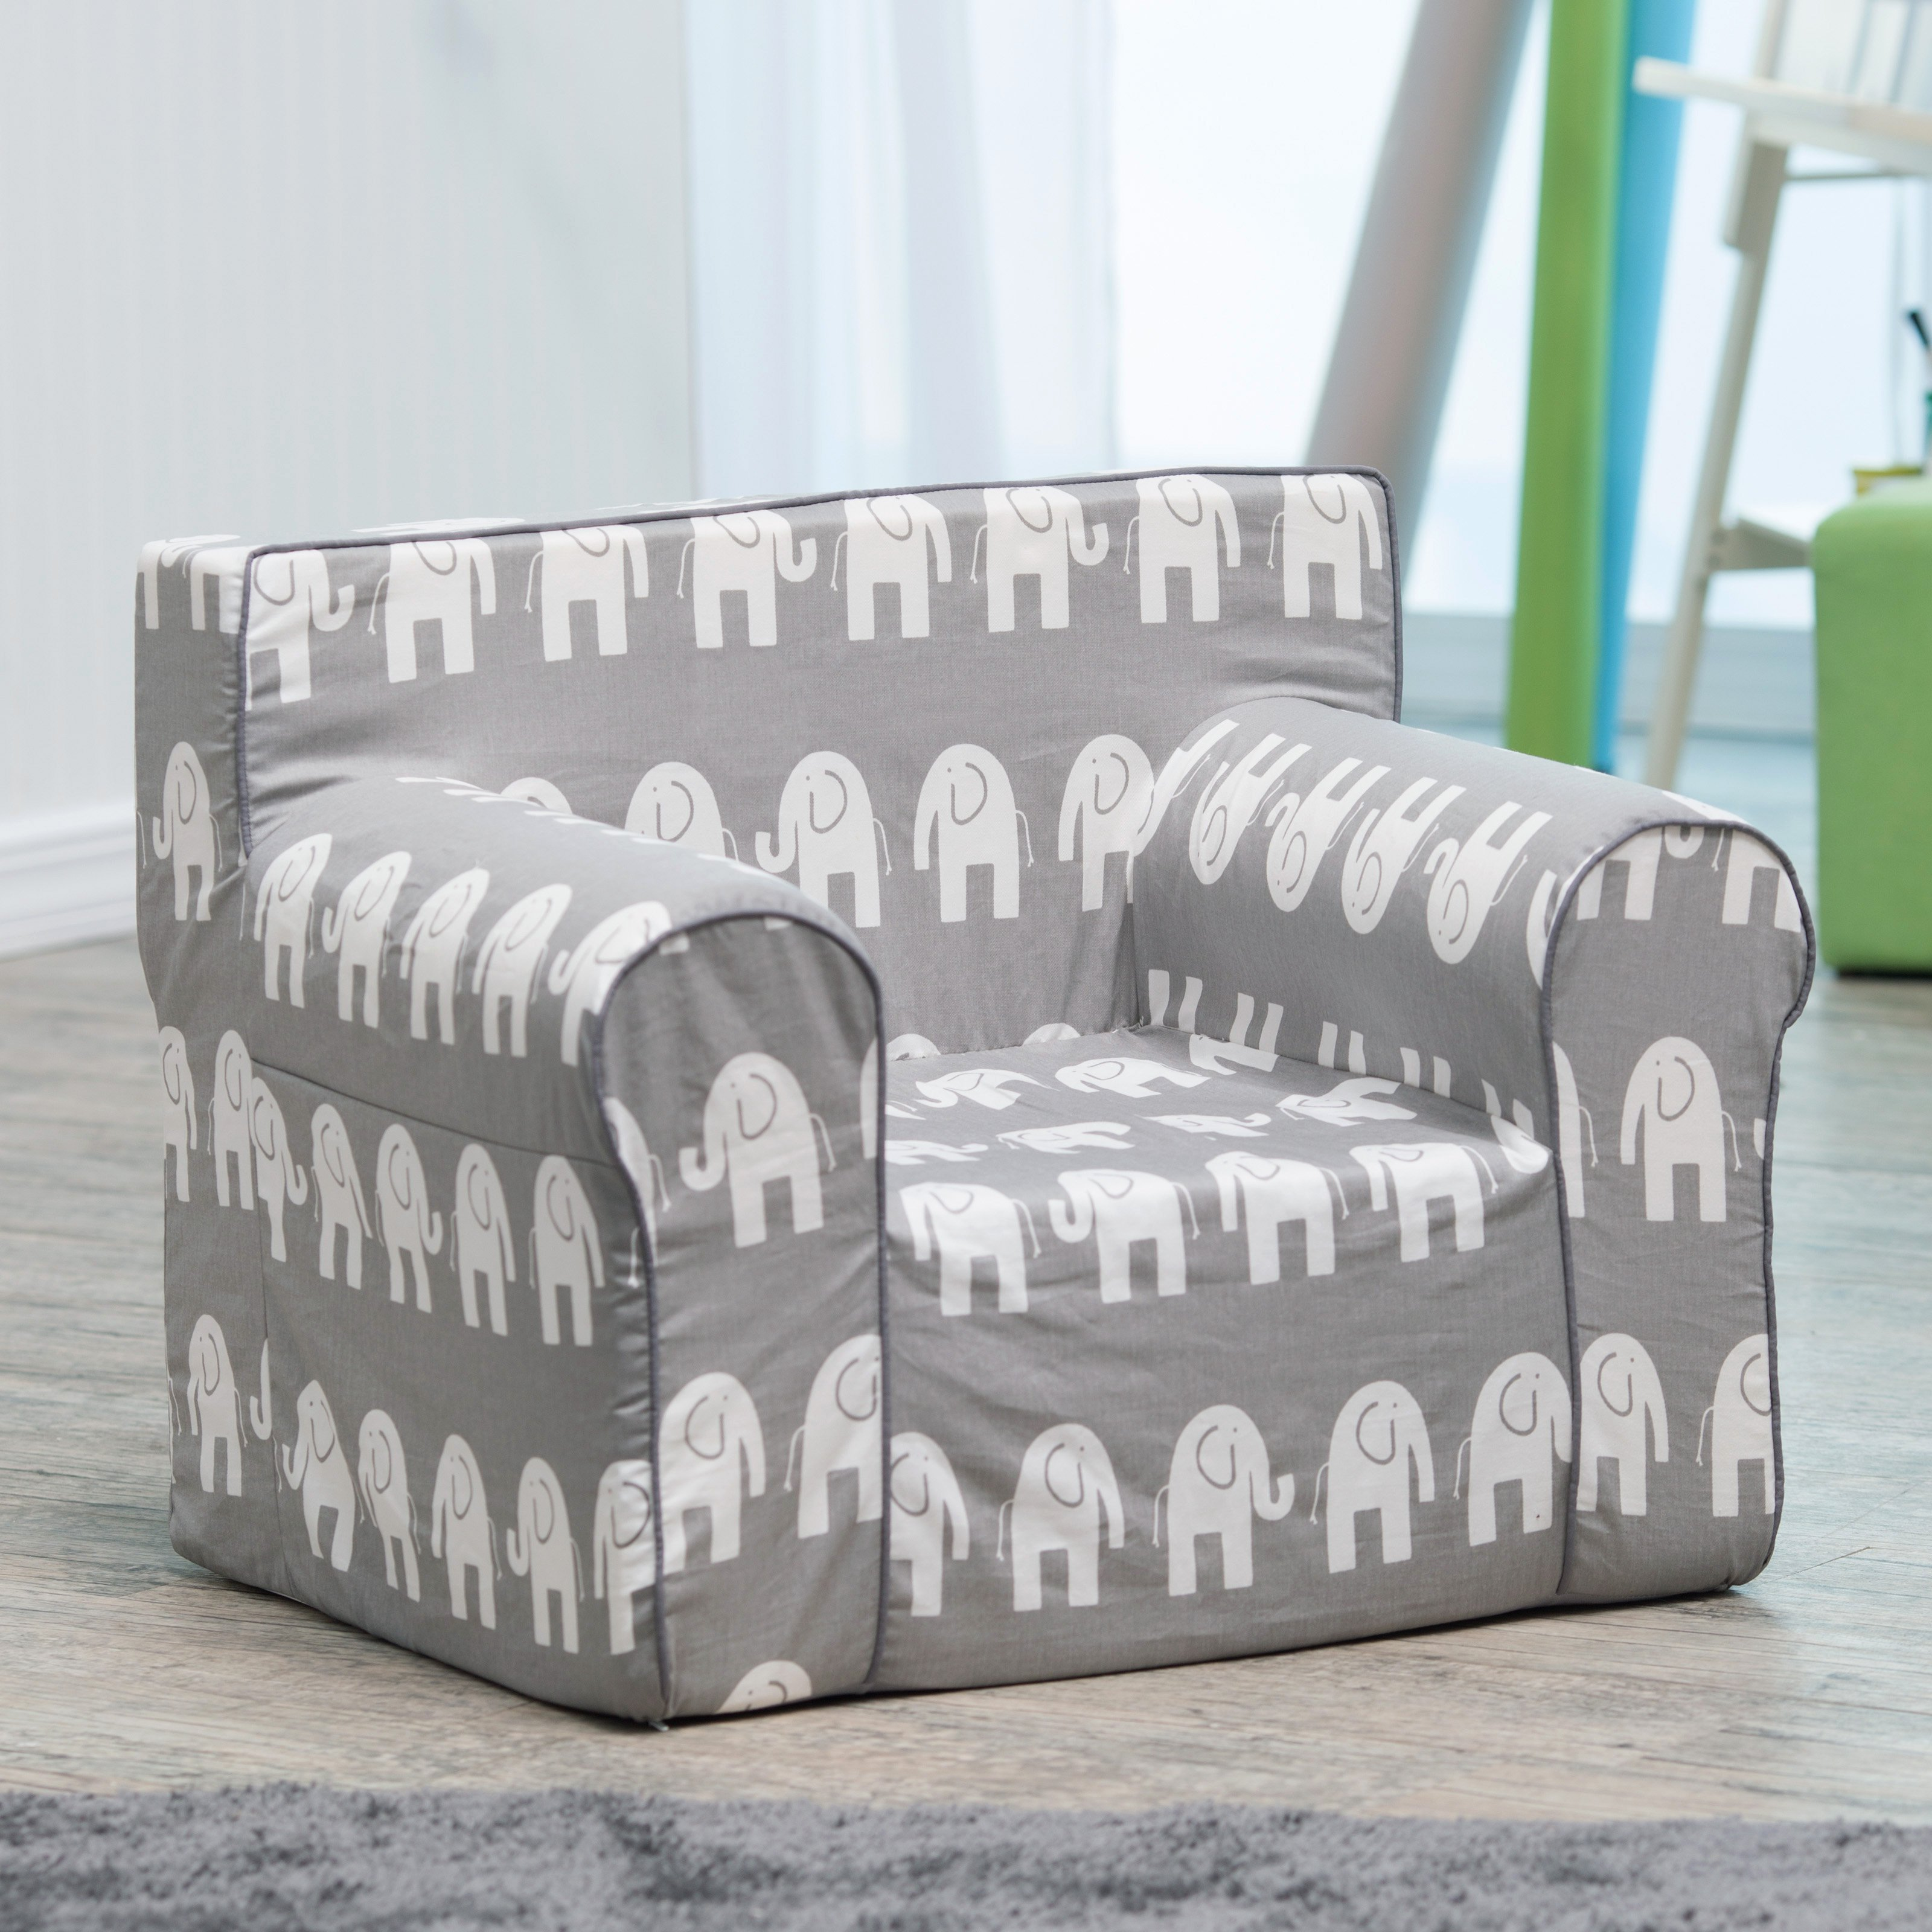 Children's chairs here and there personalized children's chair - gray elephant |  Hay needle WFGQAEF